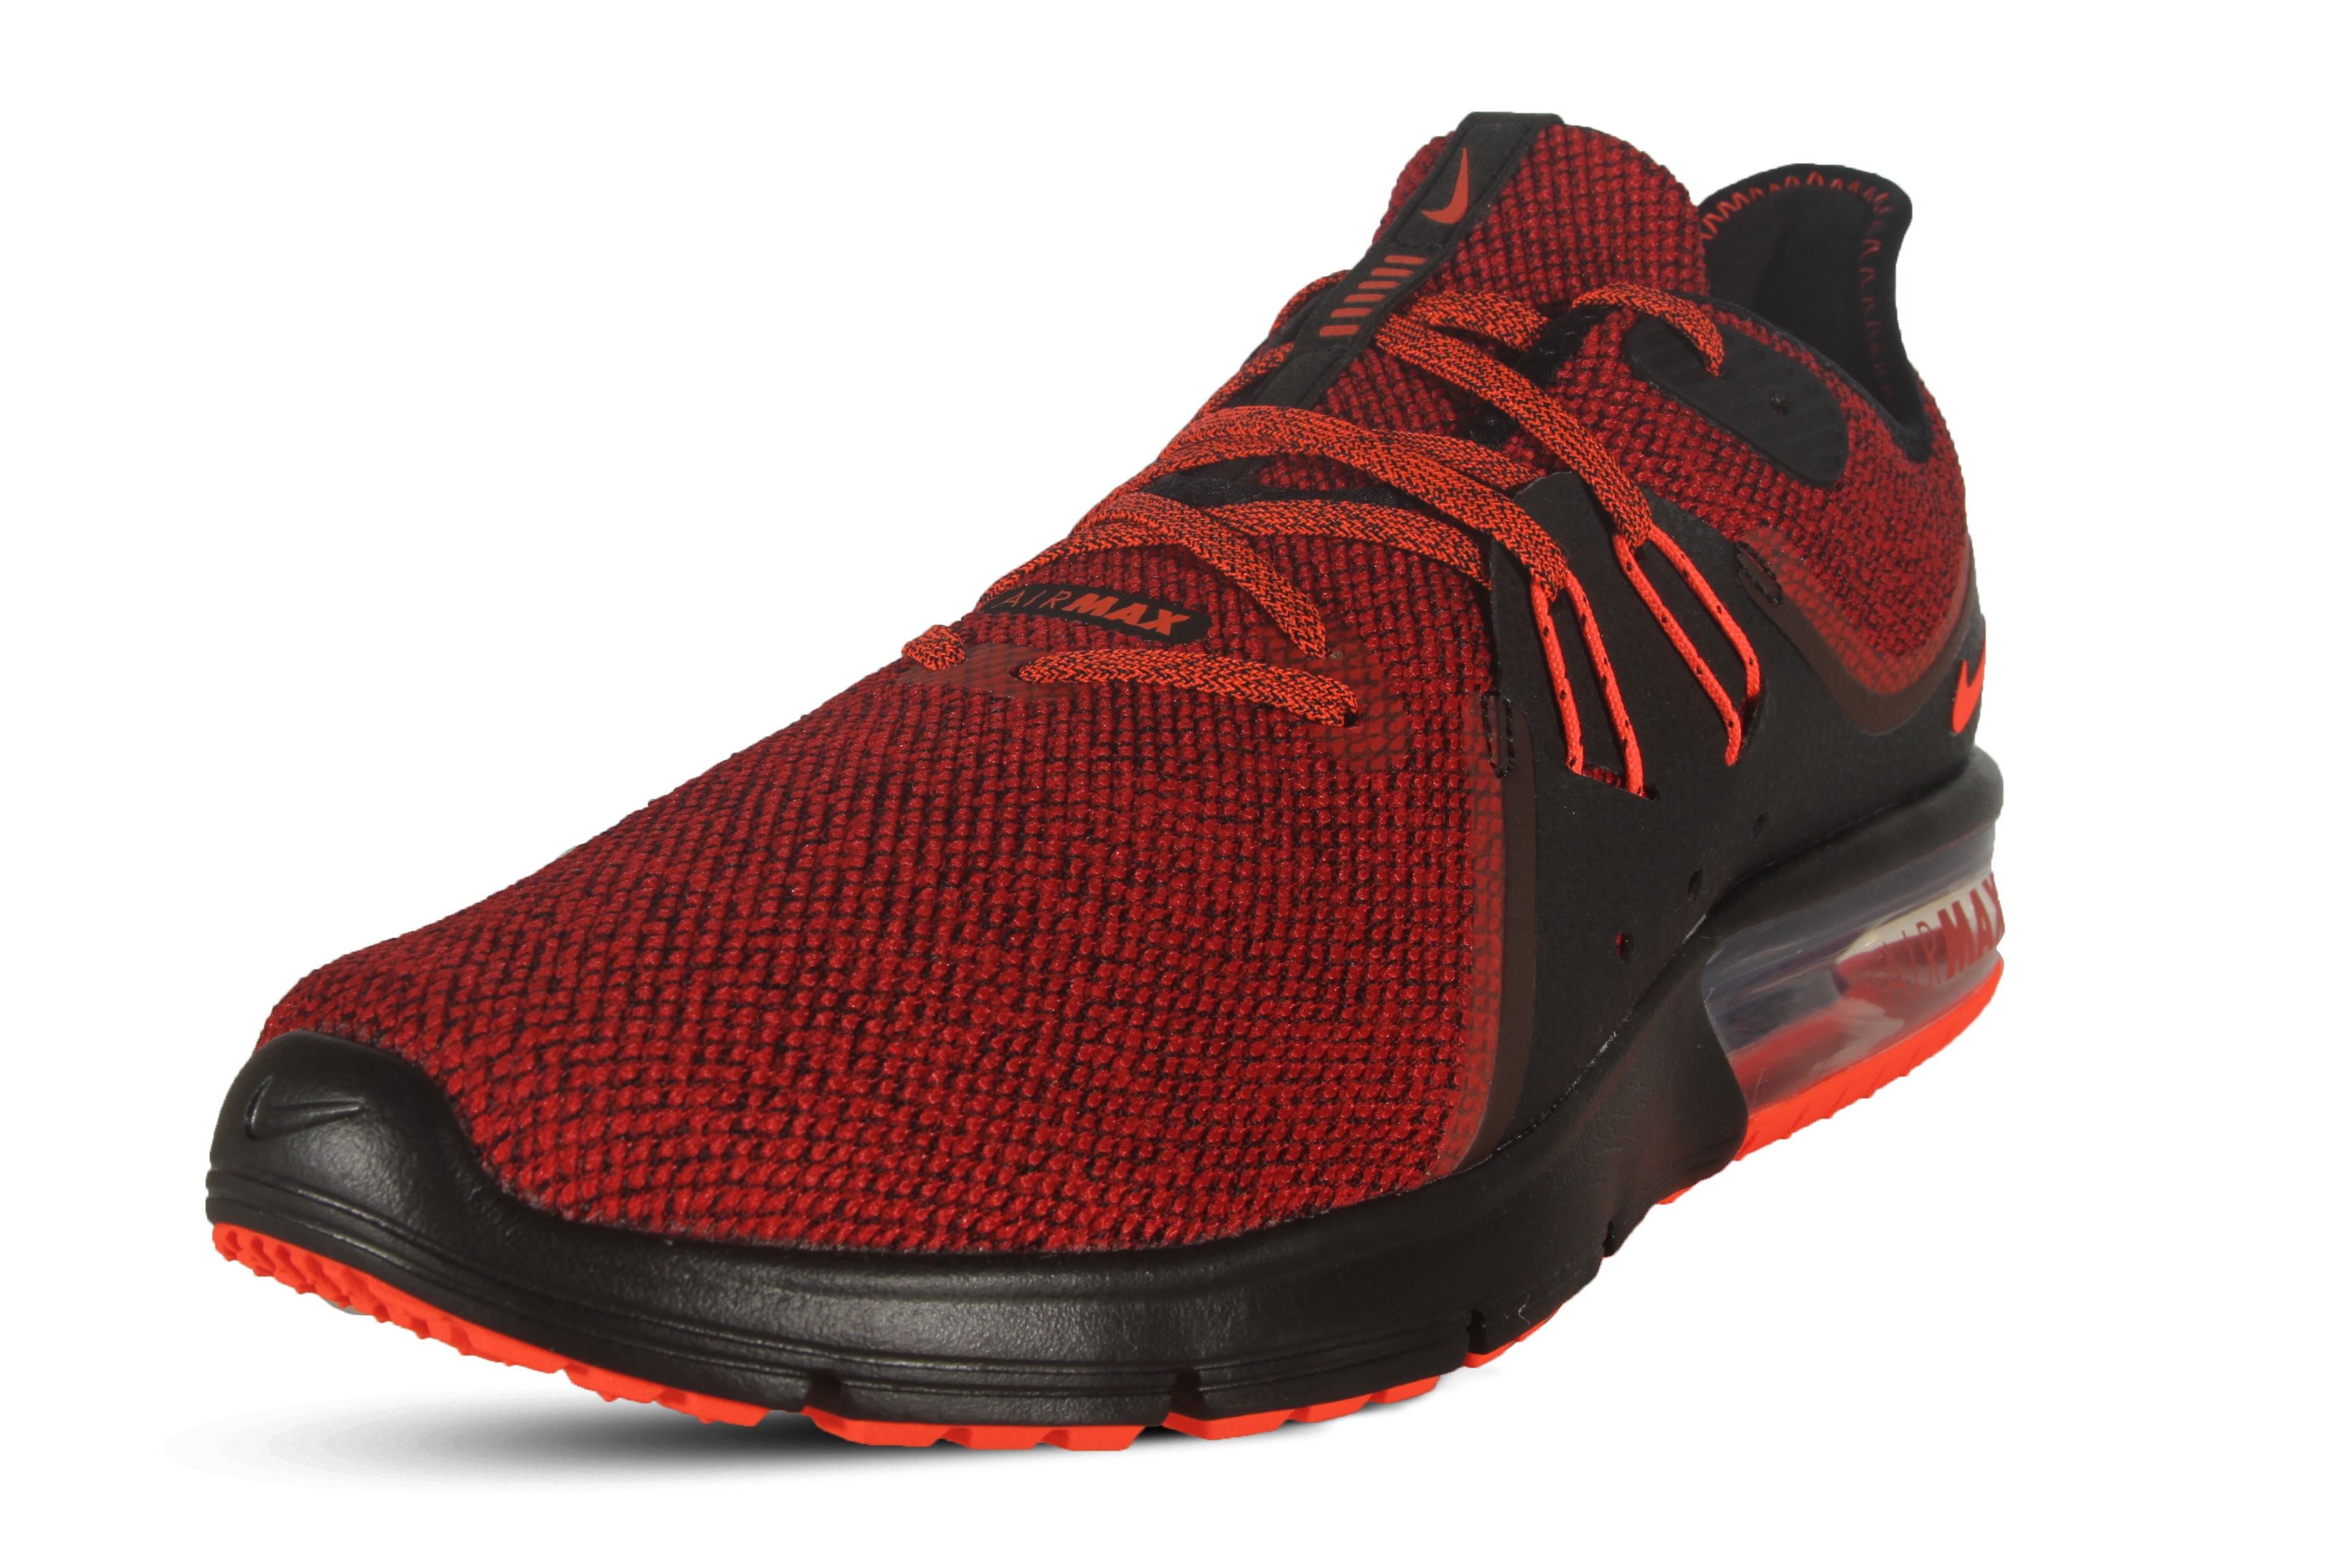 Nike Air Max Sequent 3 Men's Running Shoes Shoes Shoes